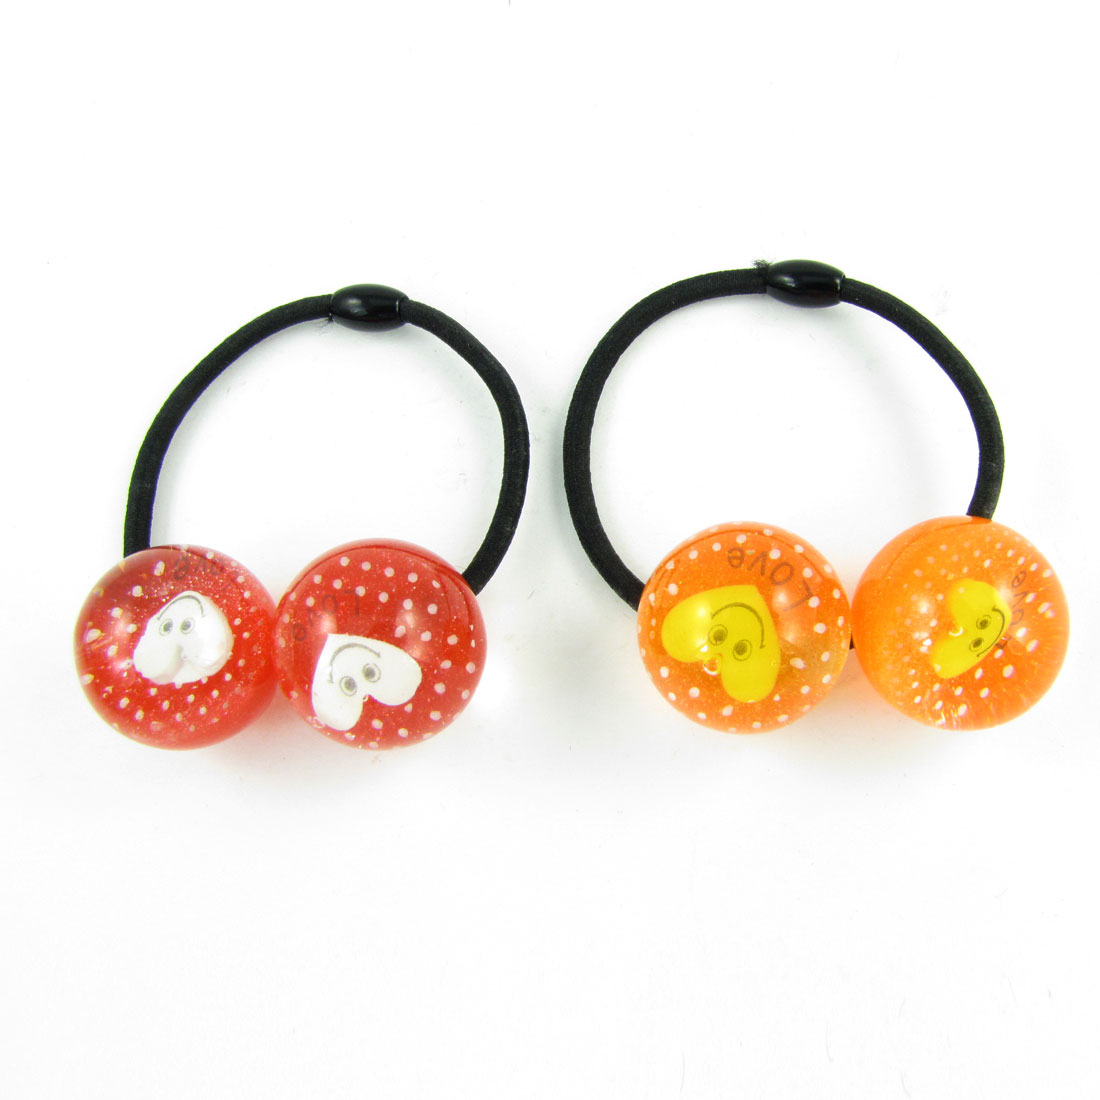 2pcs Girls Plastic Heart Smile Face Inlaid Round Beads Decor Elastic Hair Band